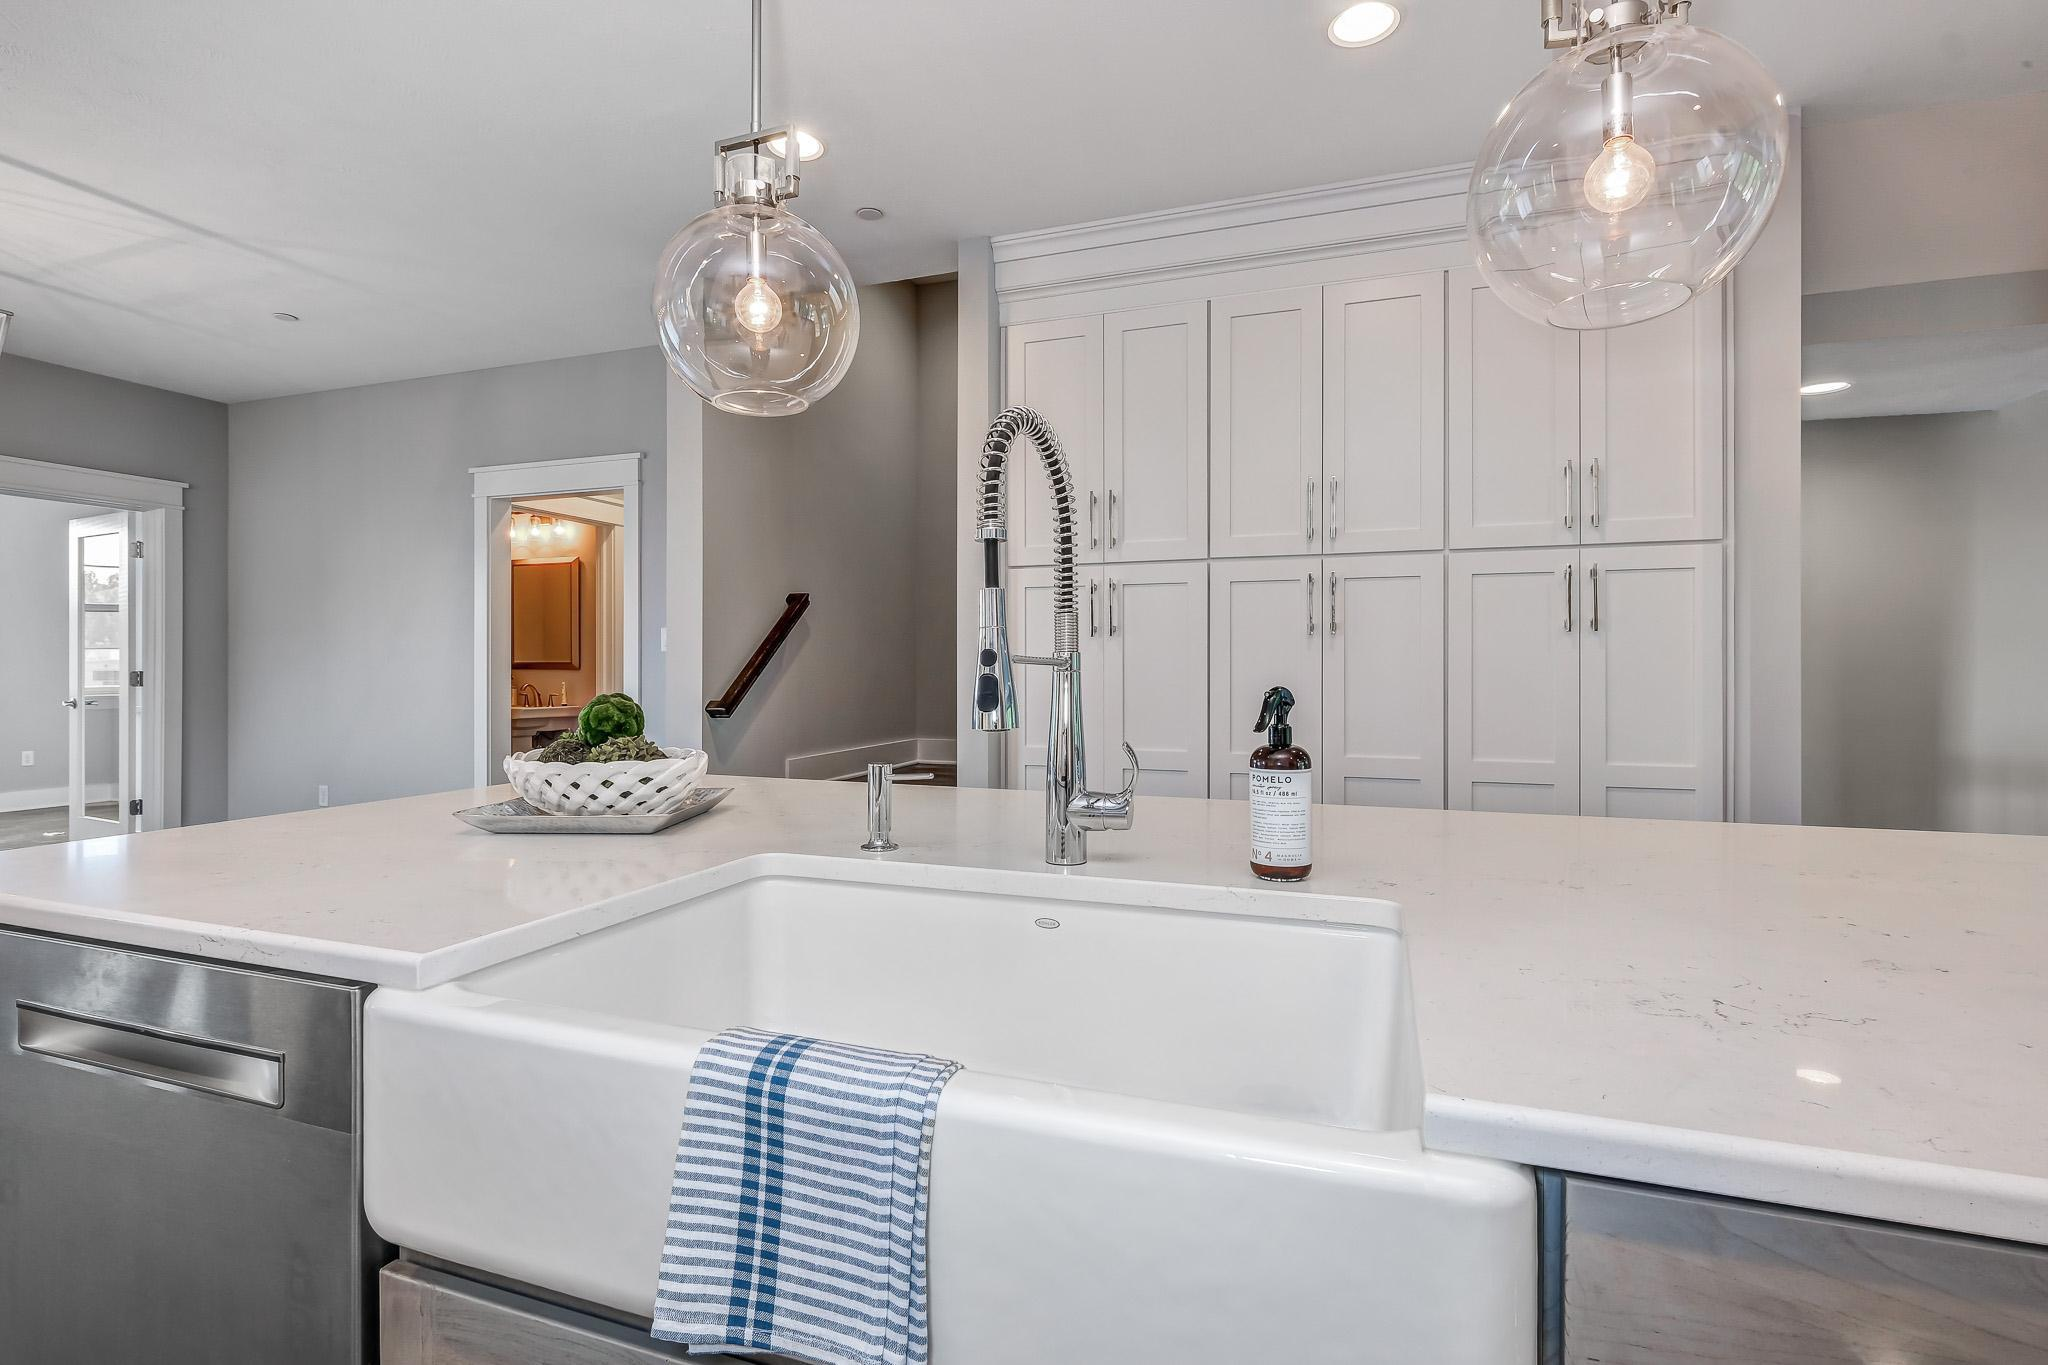 Kitchen featured in the Brooklyn By Infinity Custom Homes in Pittsburgh, PA